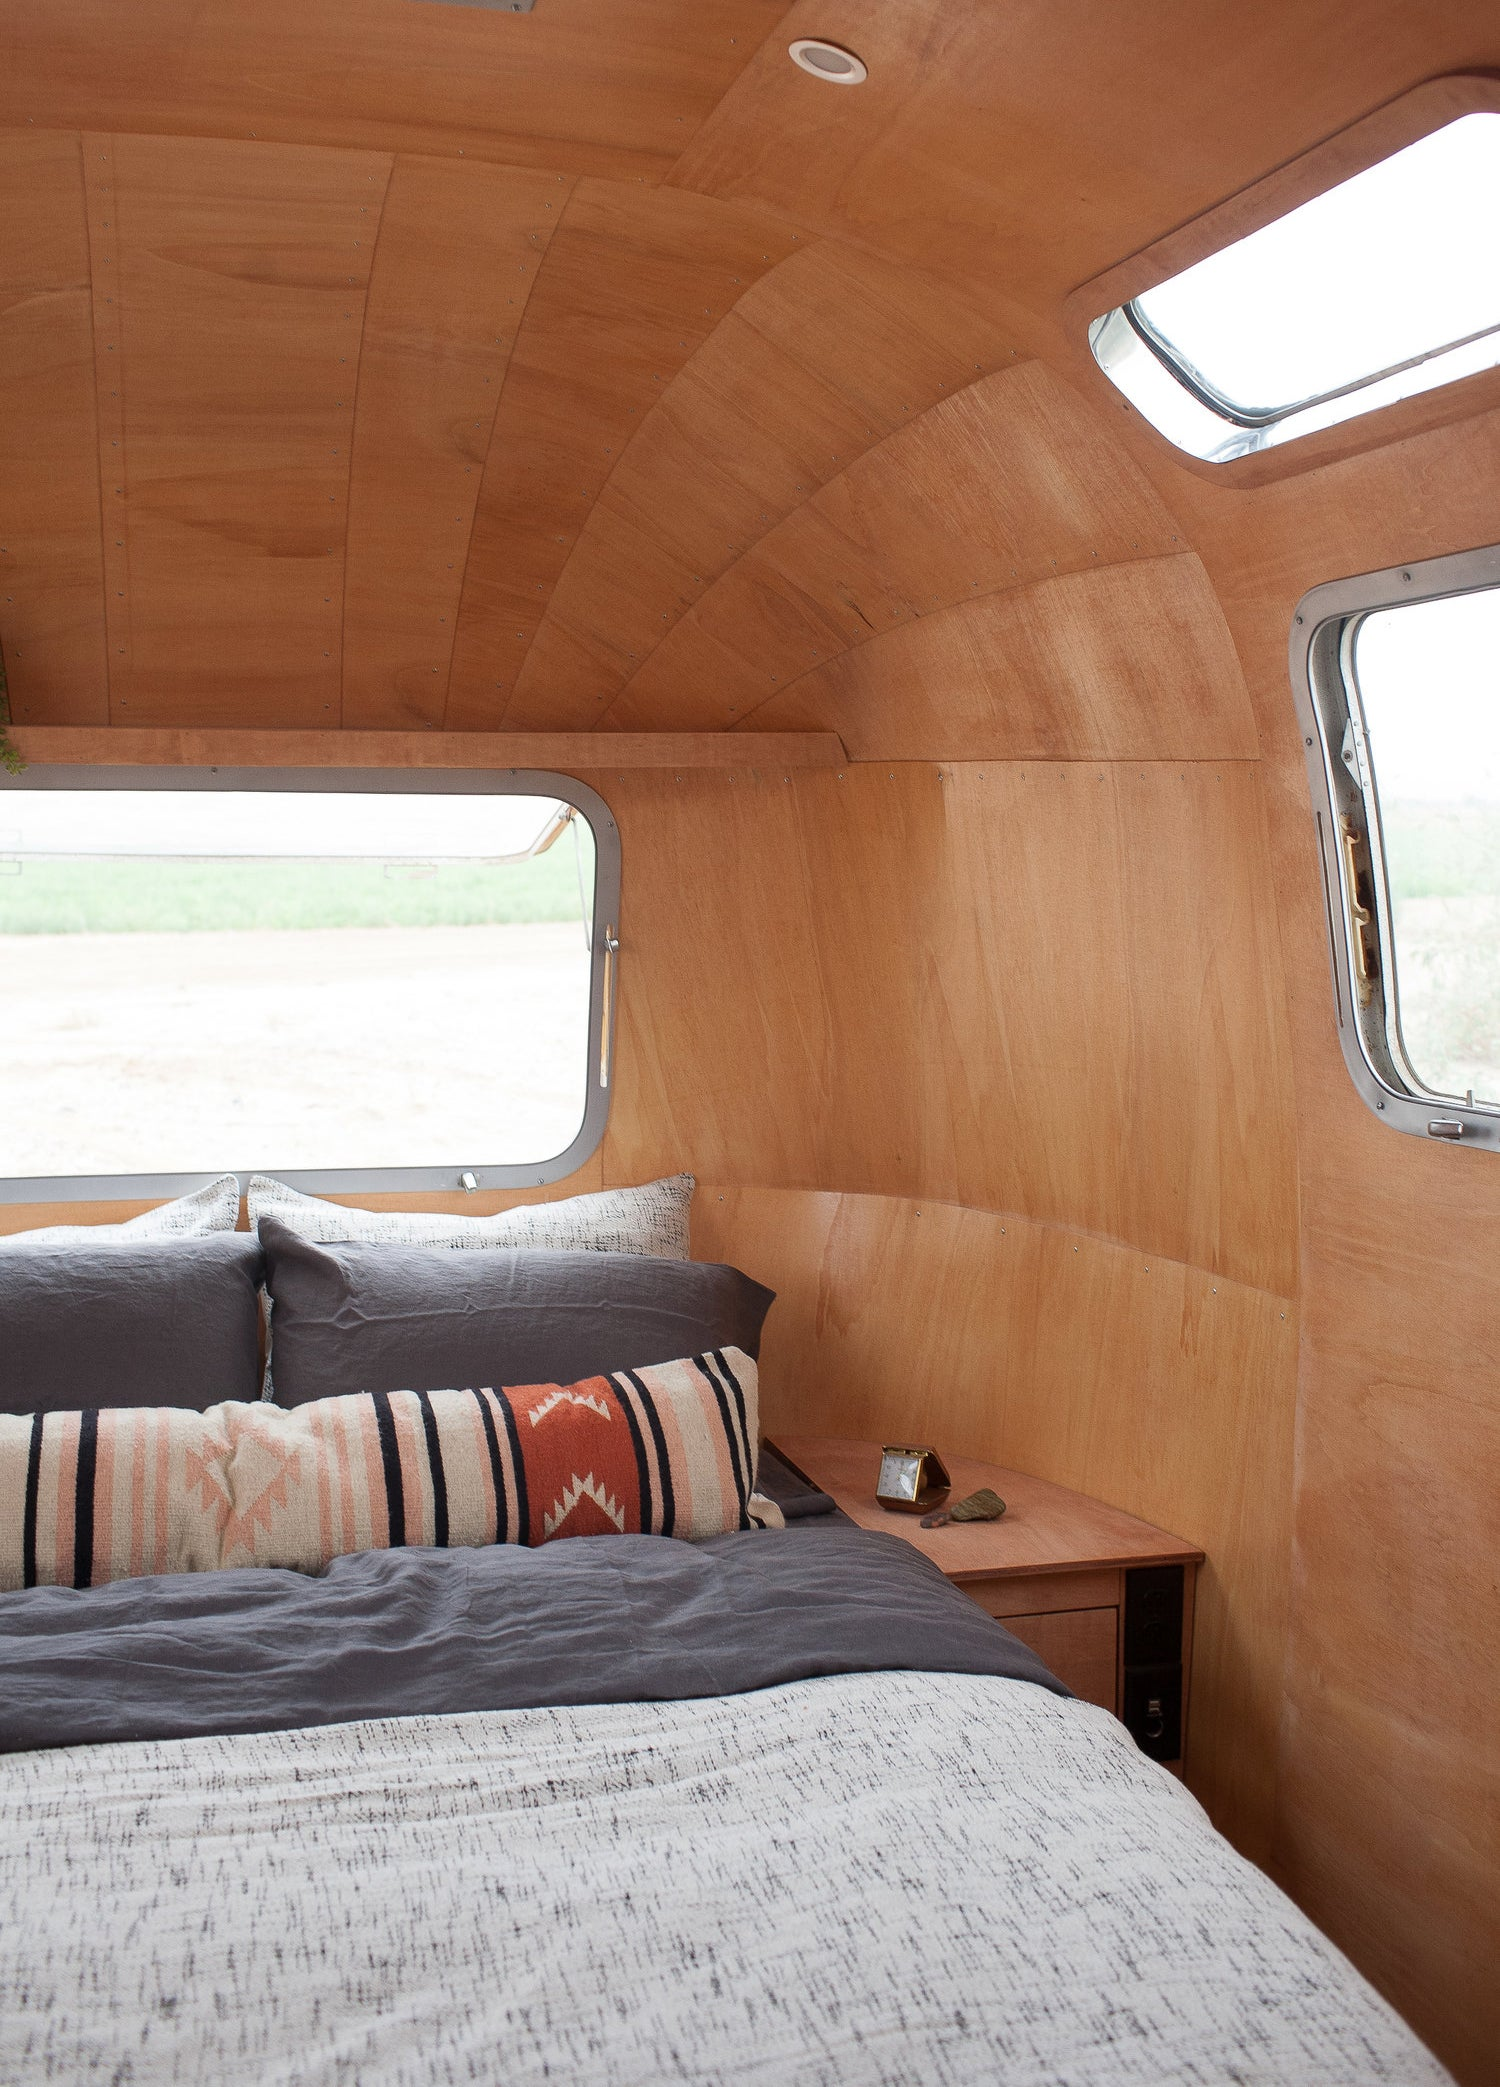 This Airstream Motorhome Packs Major Mid-Century Style into 200 Square Feet